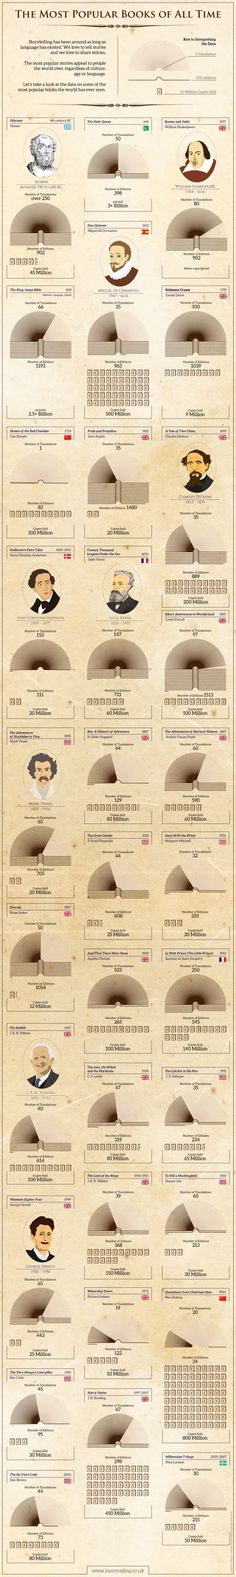 Most Popular Books of All Time Infographic